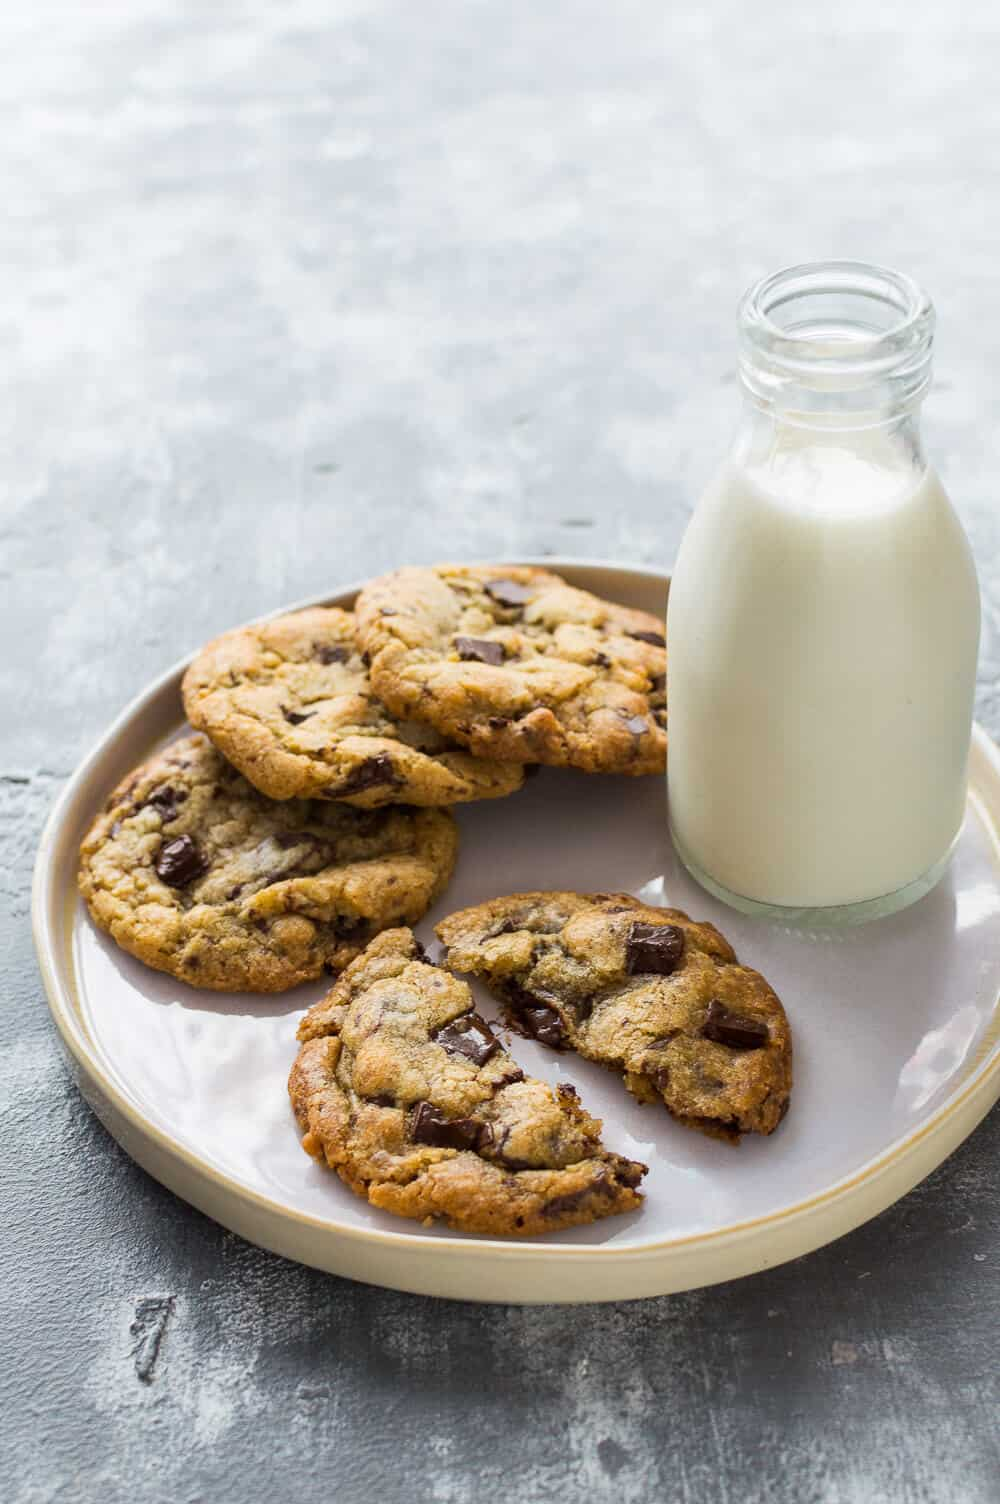 Photo of a white plate of vegan chocolate chip cookies with a glass bottle of almond milk on a grey background